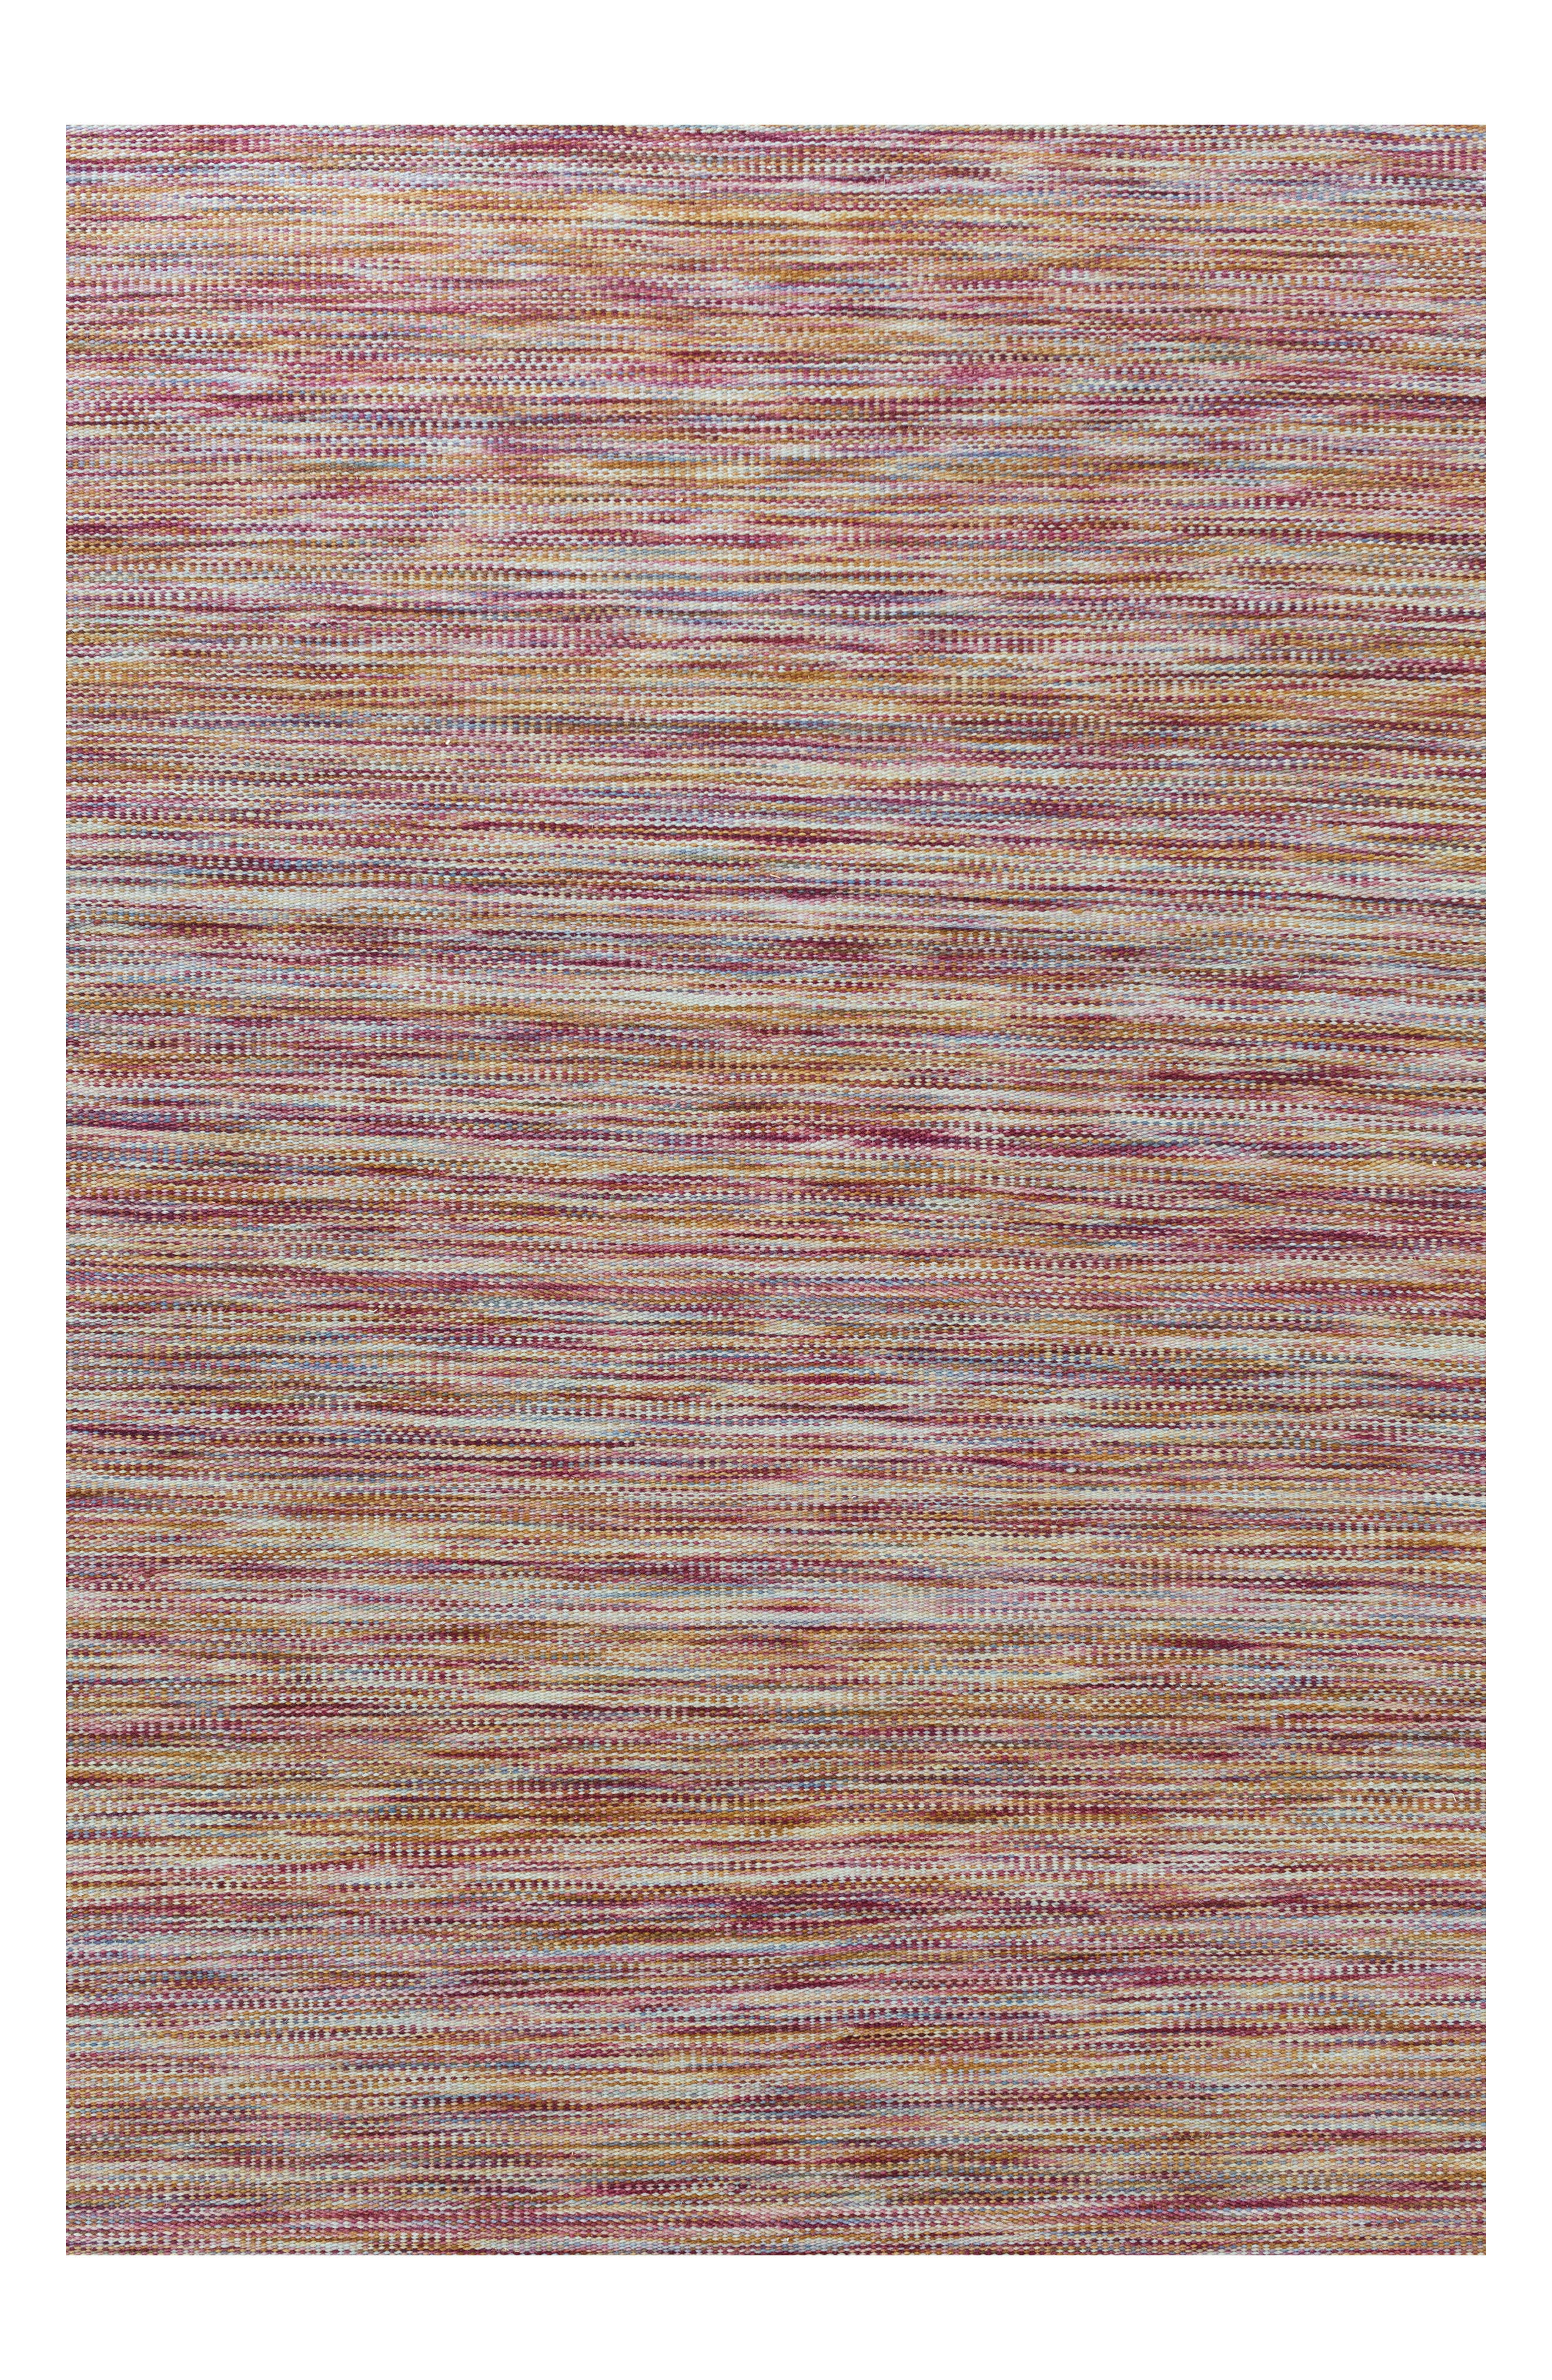 Bloomsbury Handwoven Wool Blend Rug,                         Main,                         color, 200